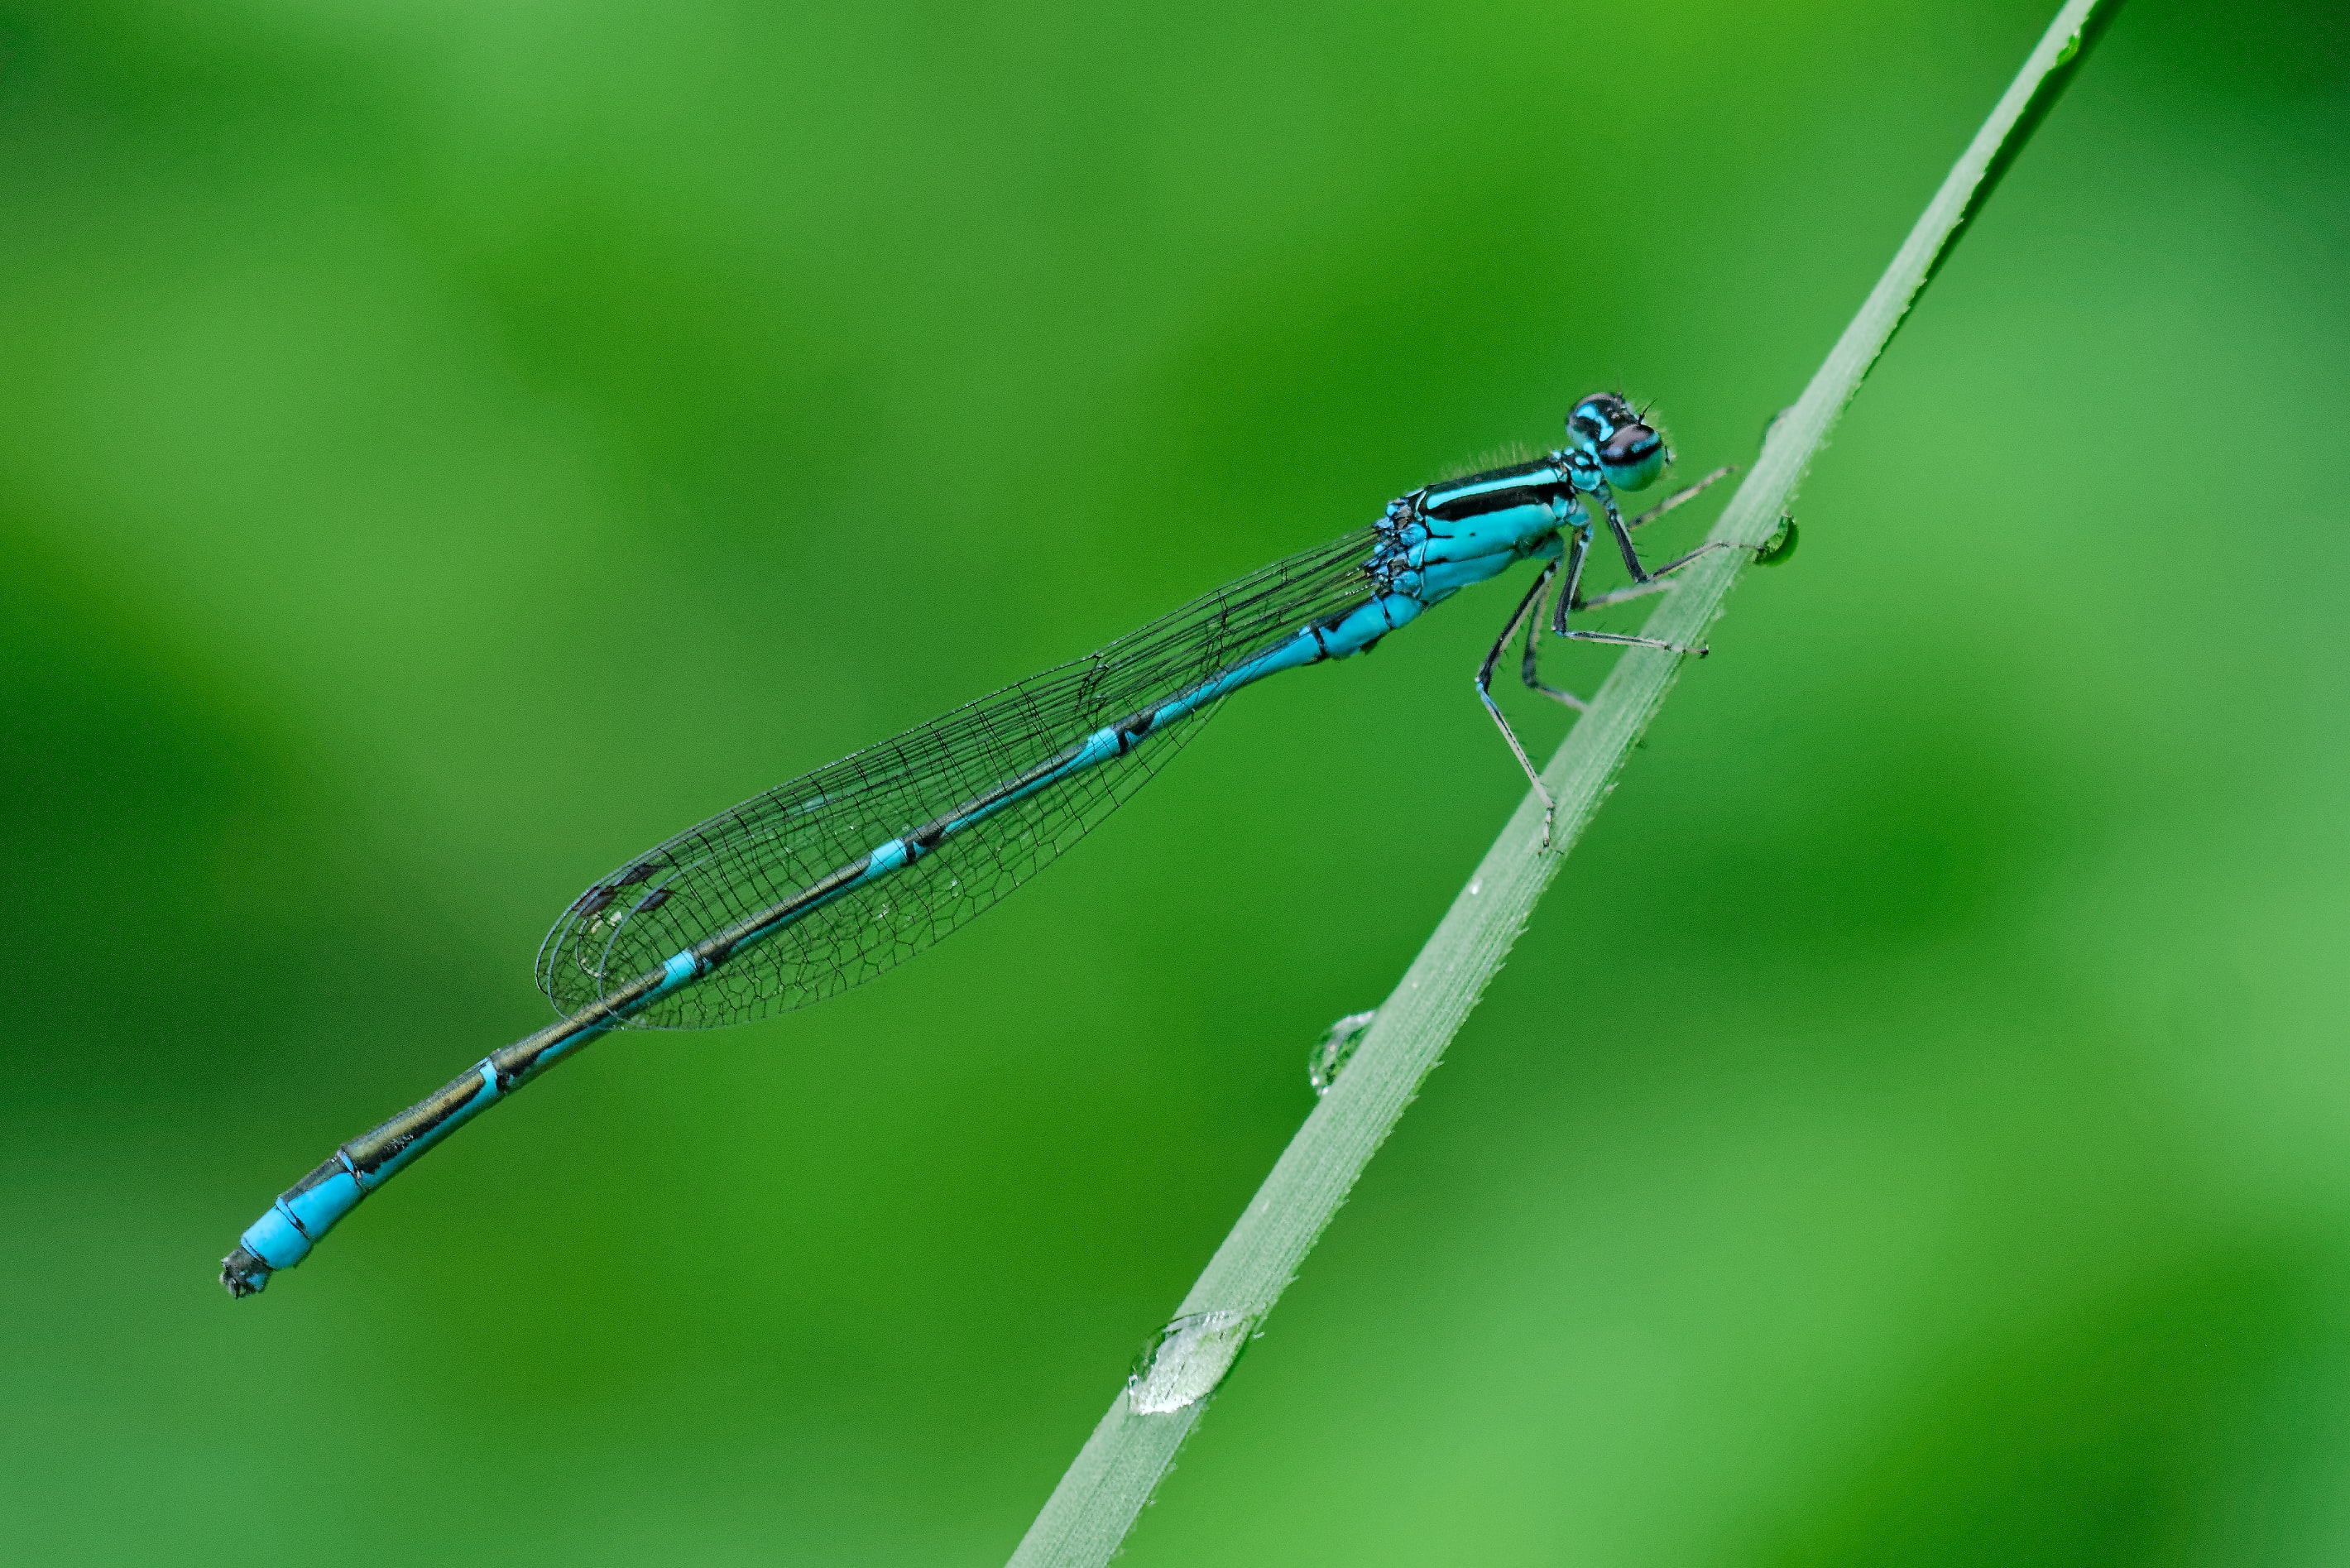 shallow focus photography of blue dragonfly on green grass with water drops